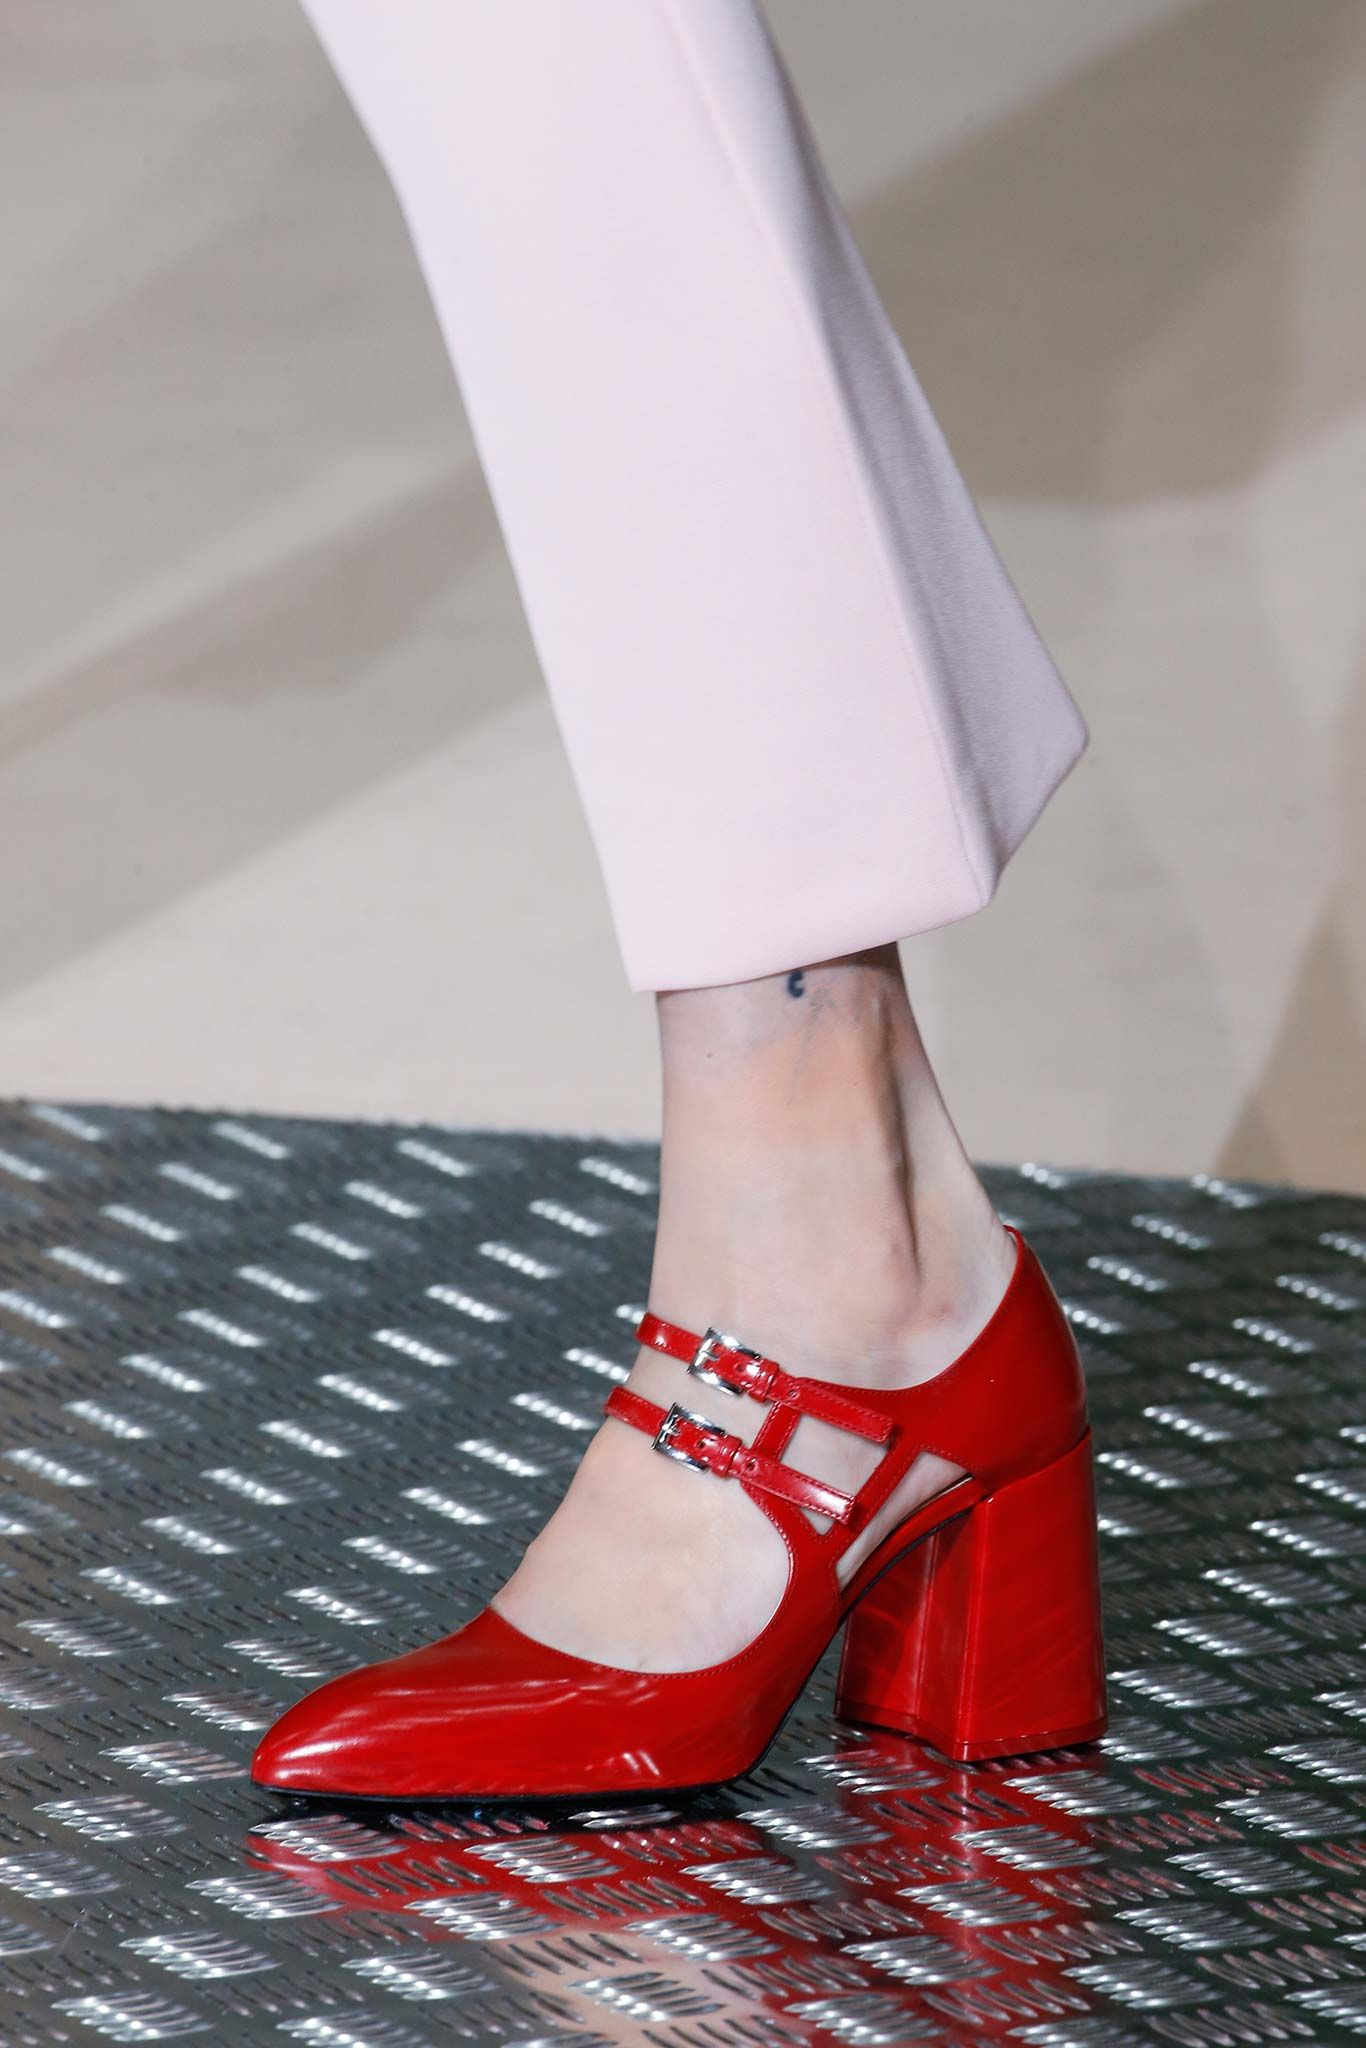 6b8020048e9 Prada Fall 2015 Ready-to-Wear - Collection - Gallery - Style.com ...